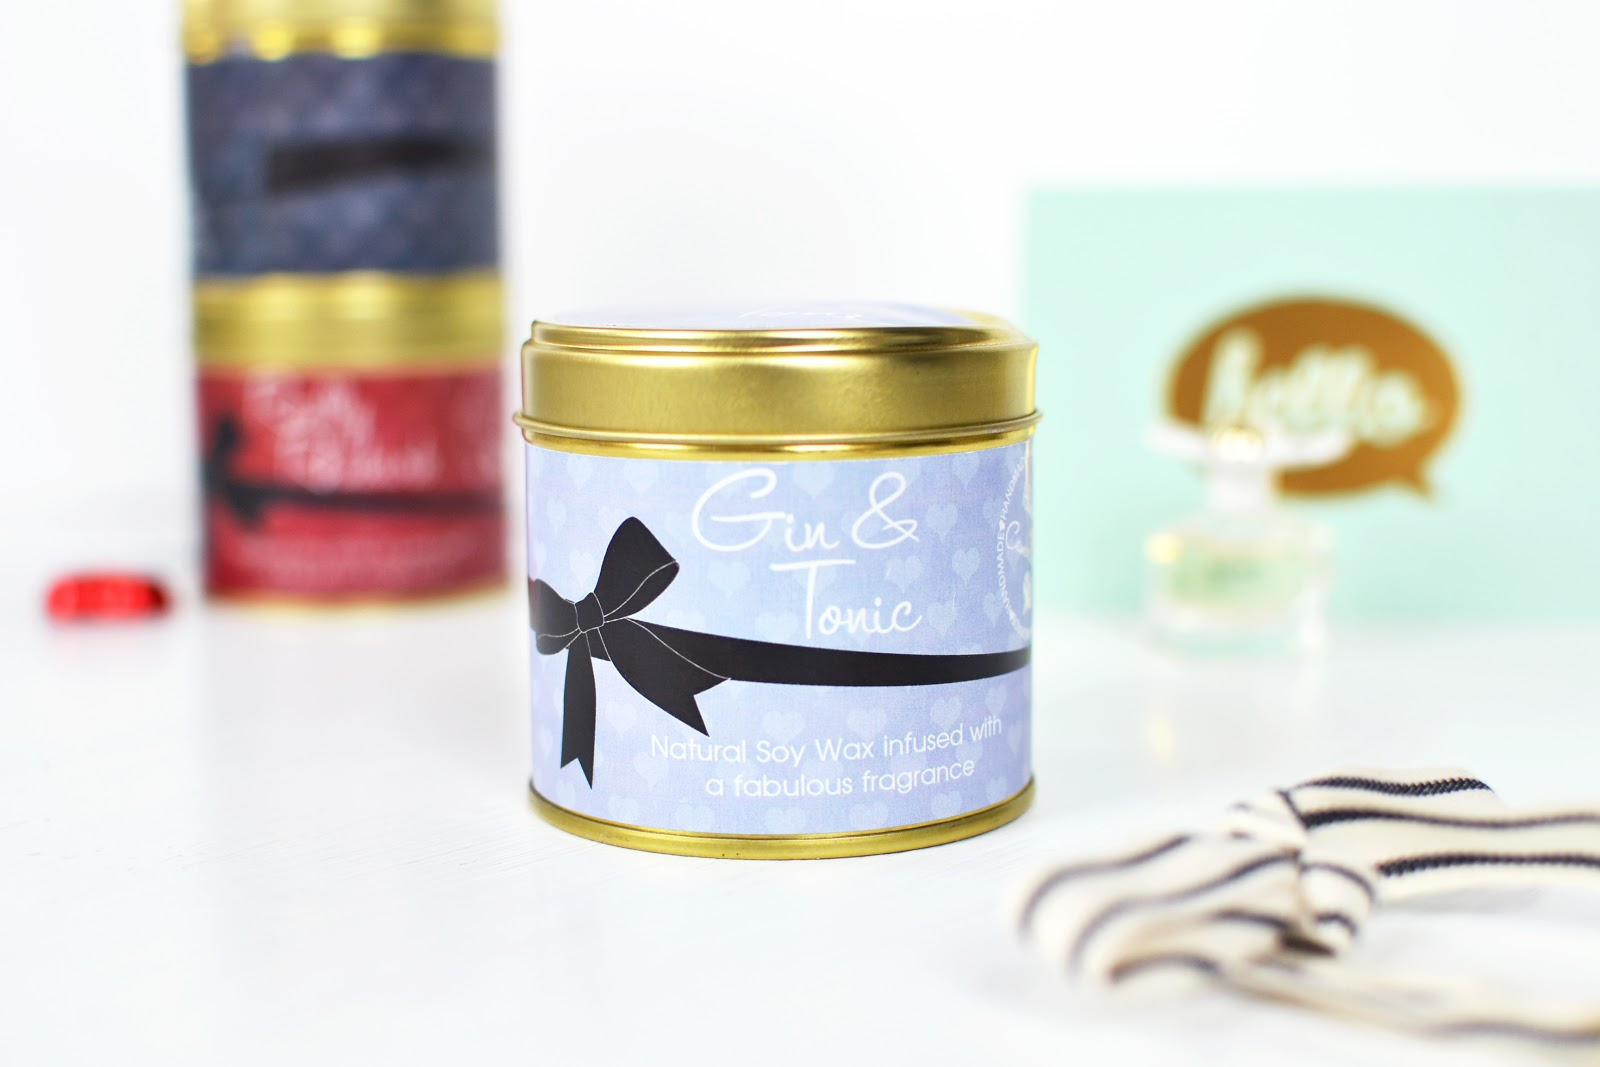 gin and tonic soy wax scented candles